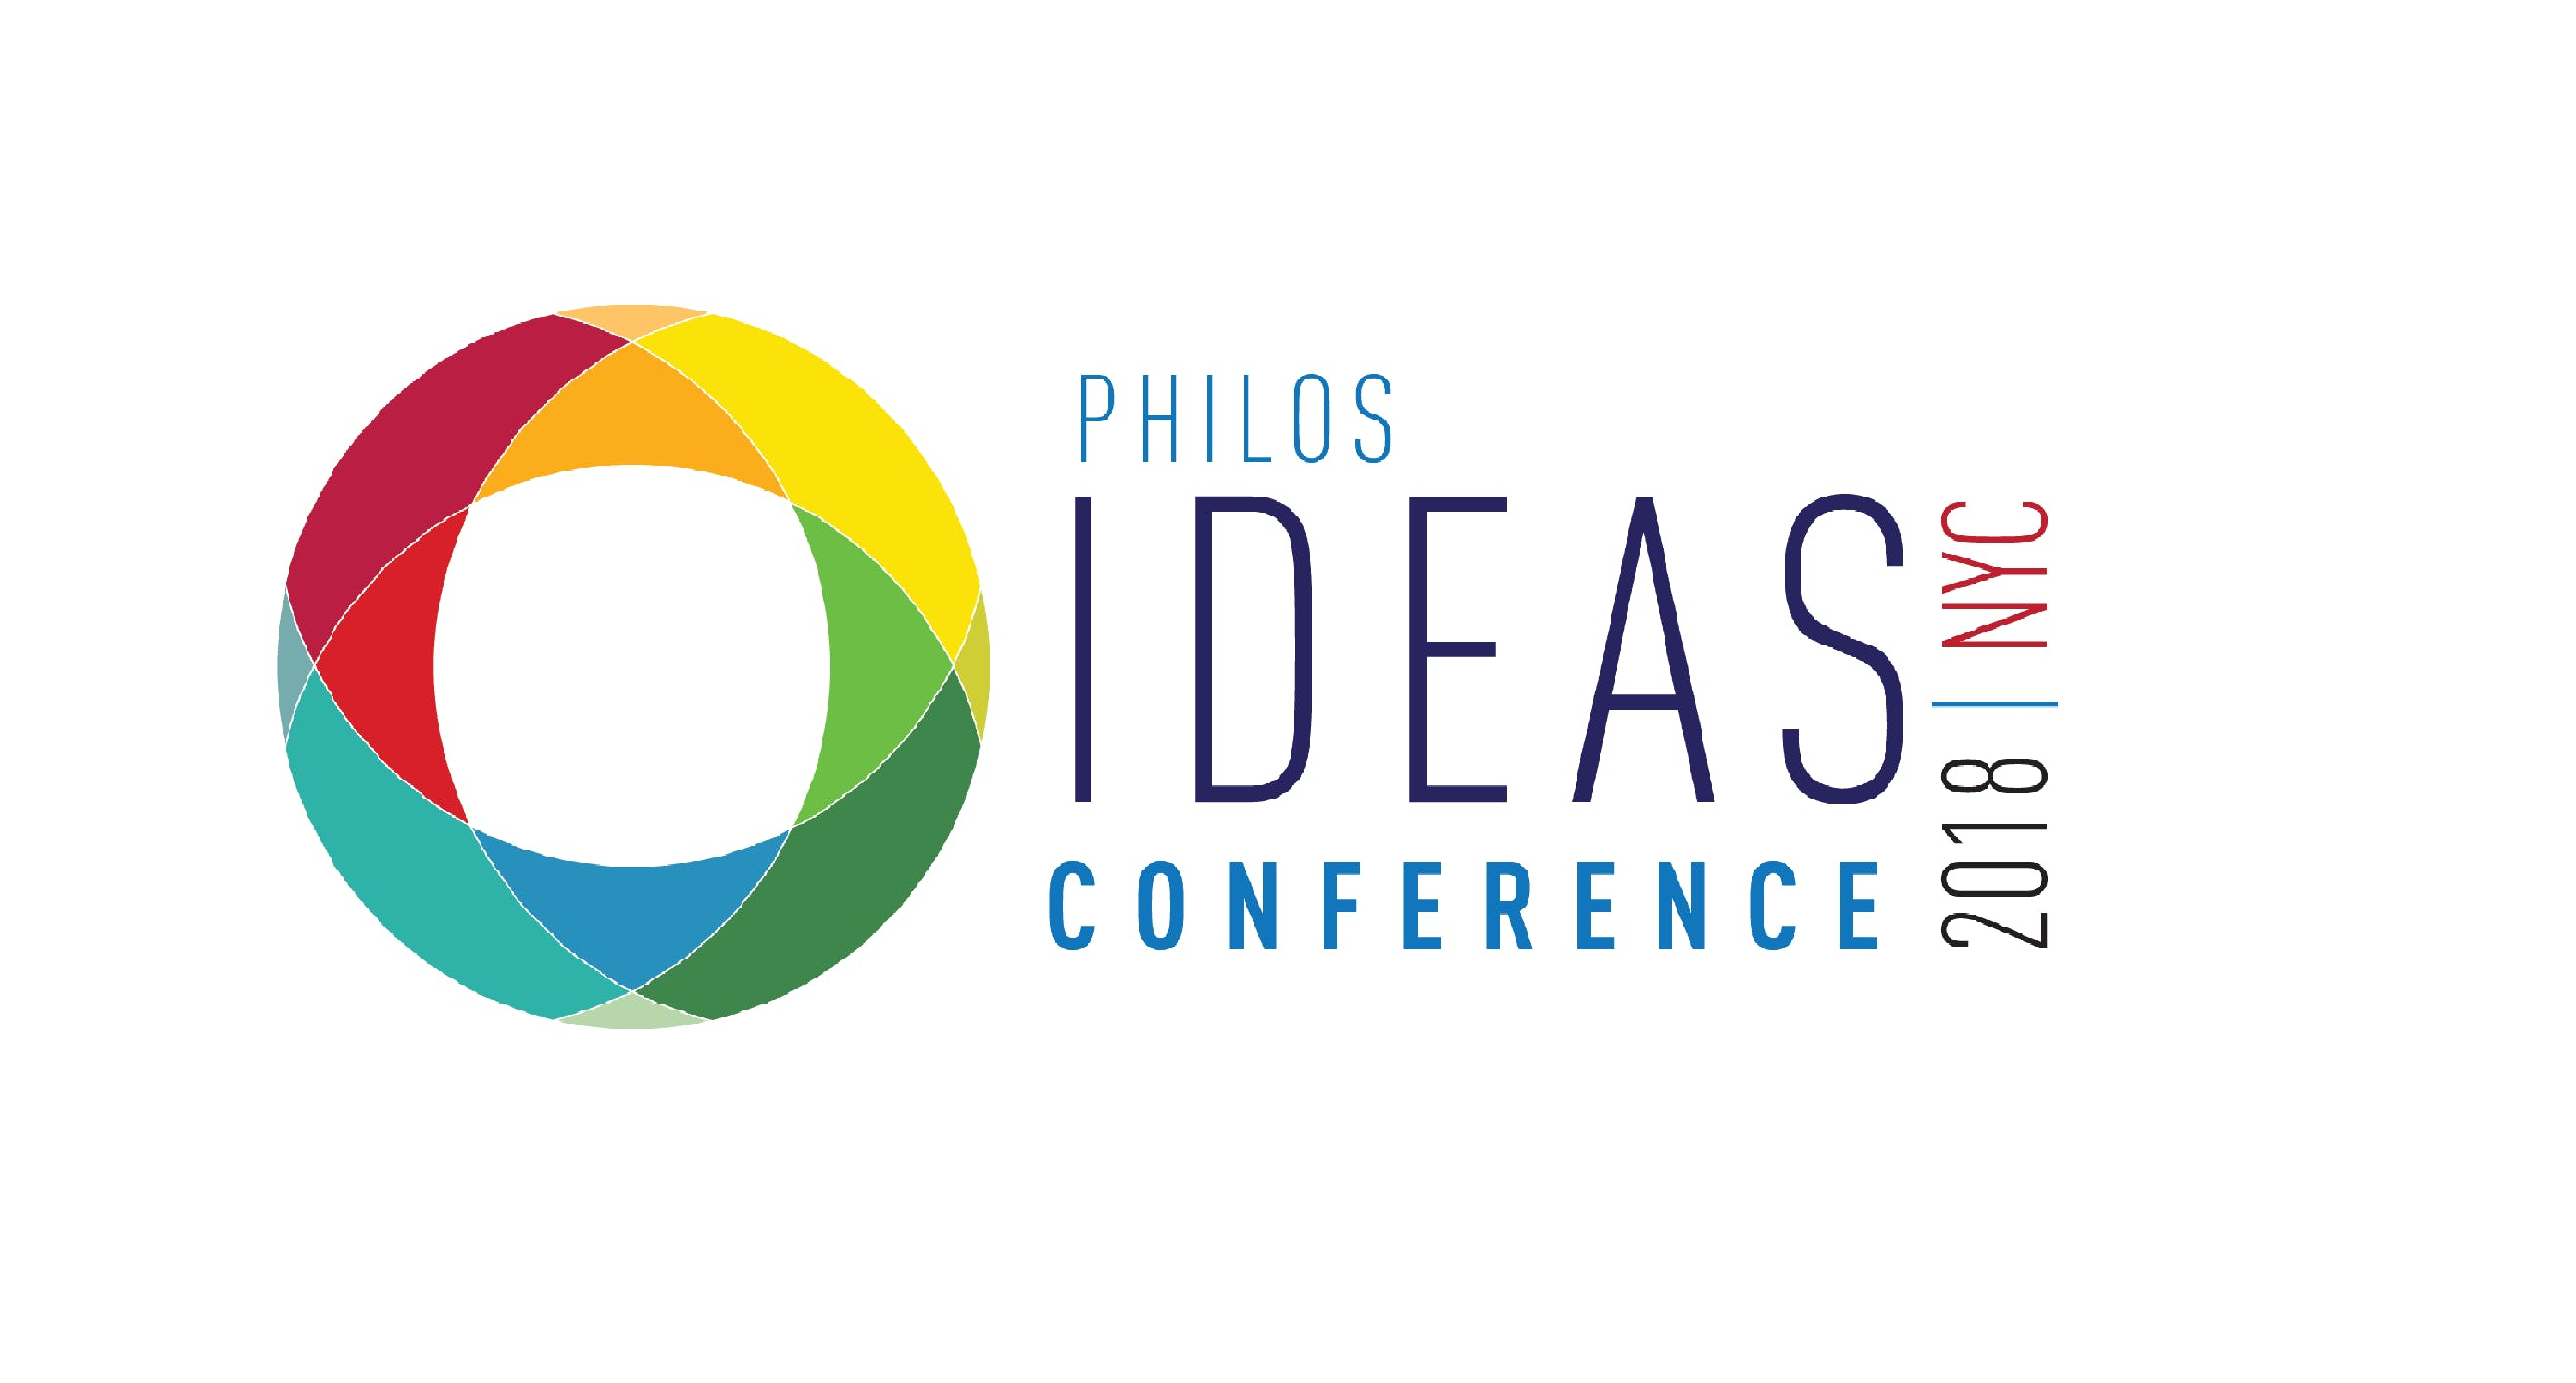 Philos Ideas Conference